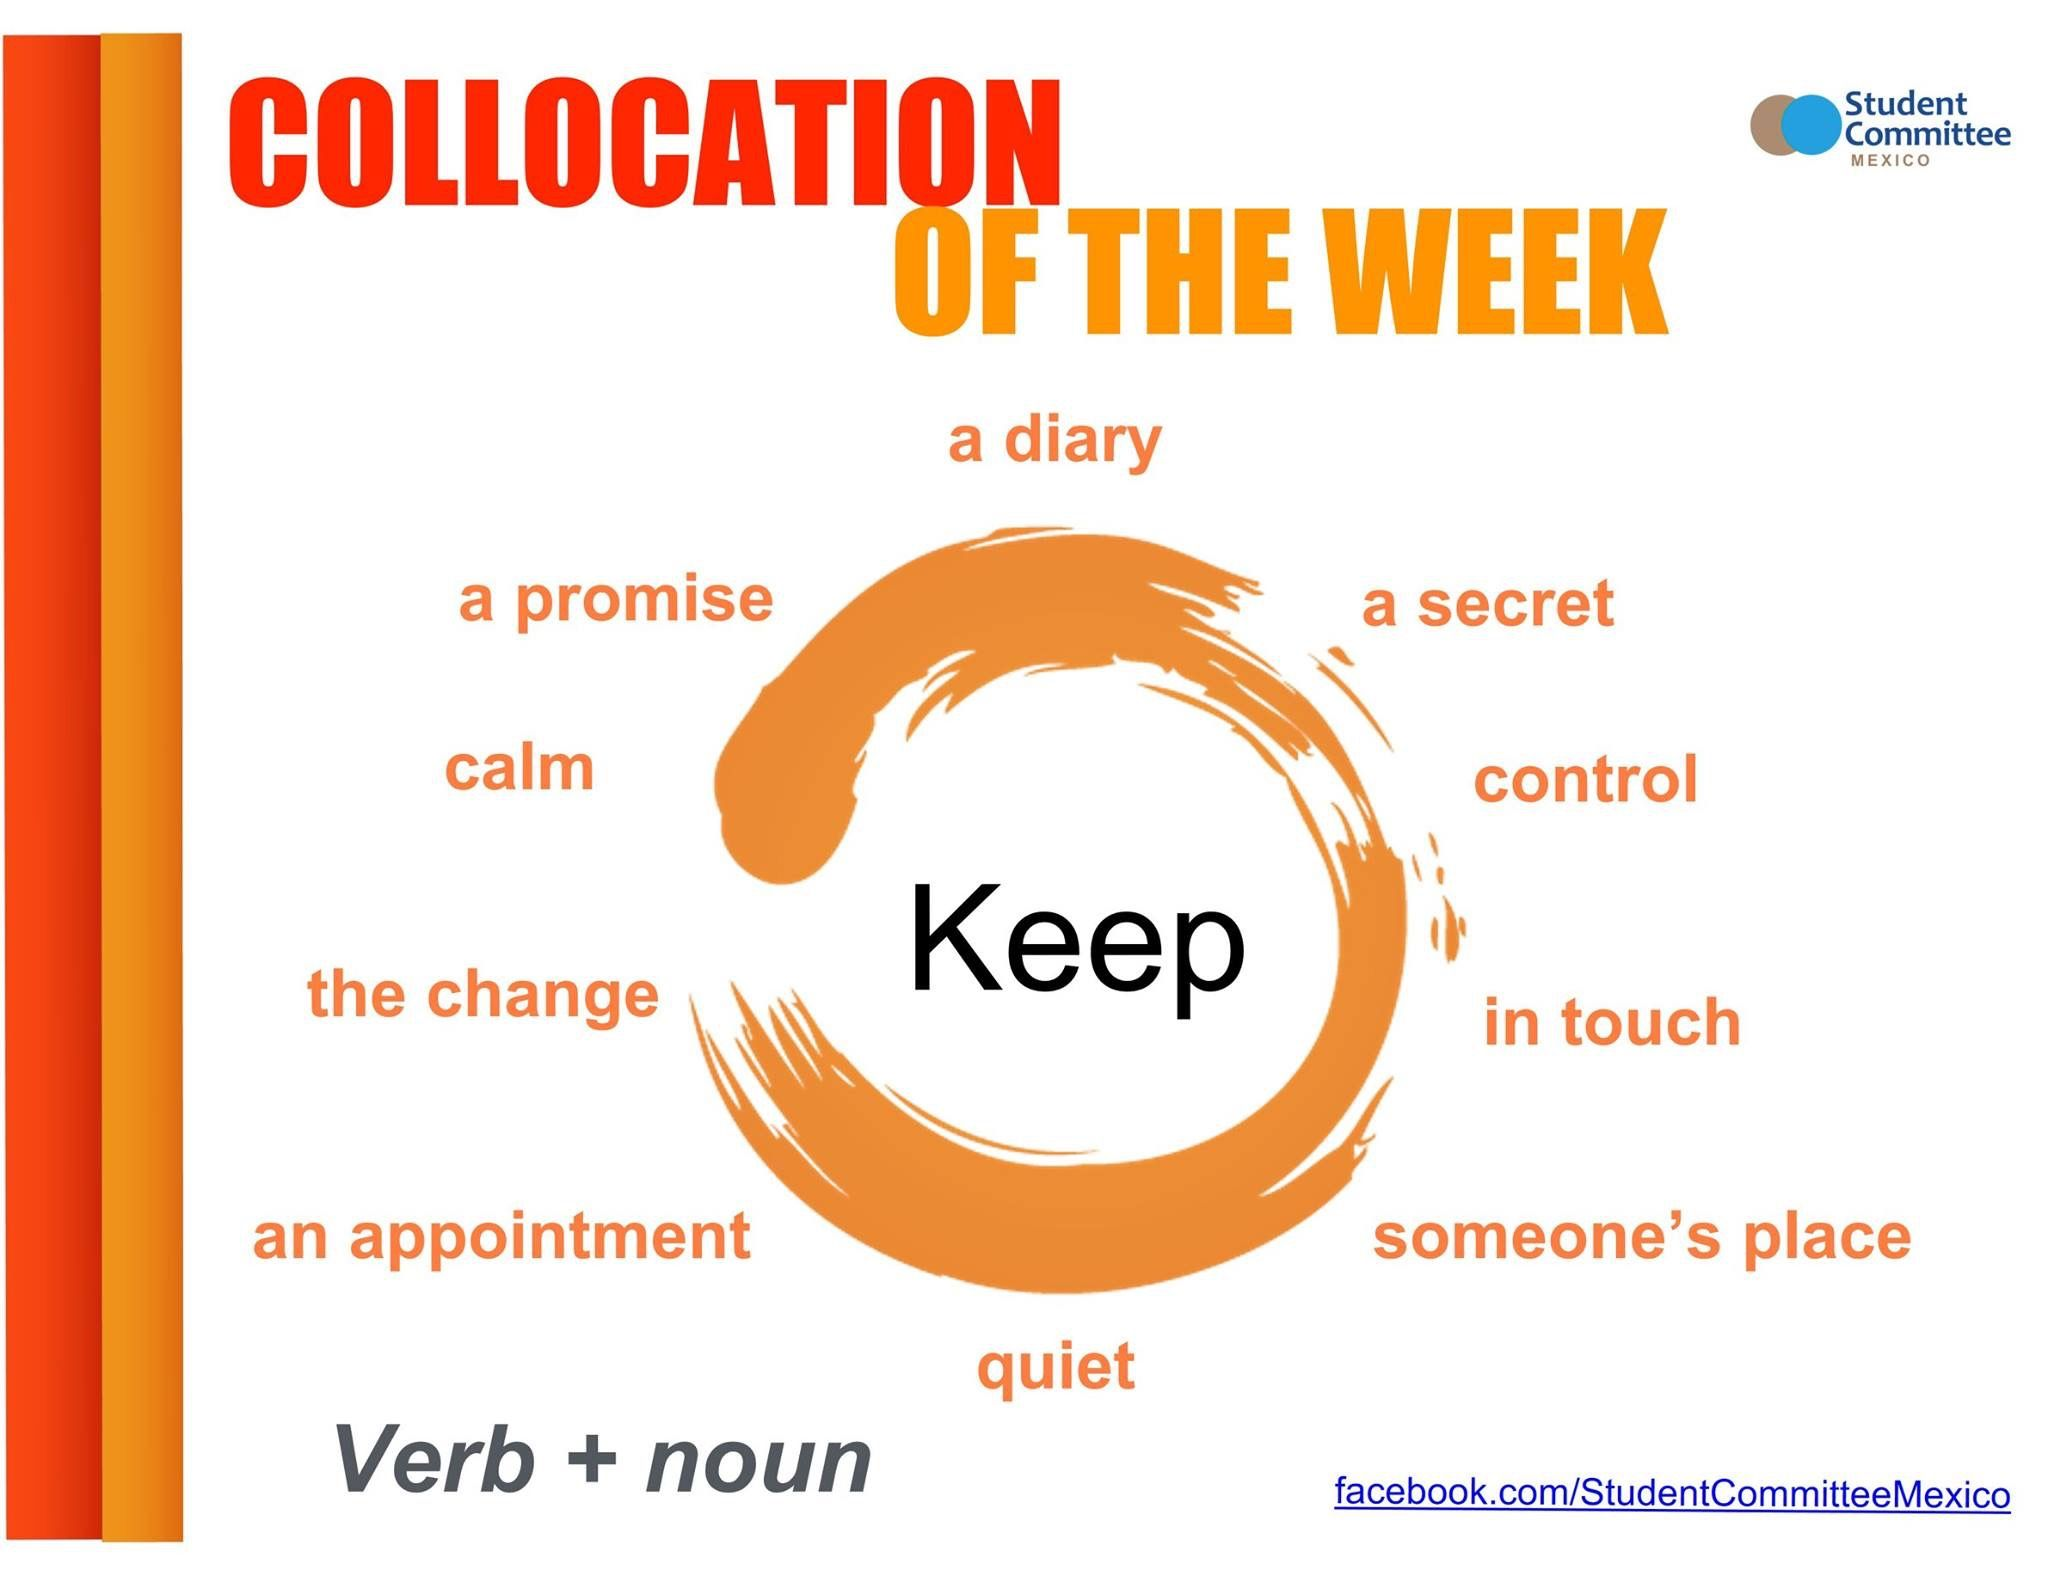 ' Keep' COLLOCATION OF THE WEEK